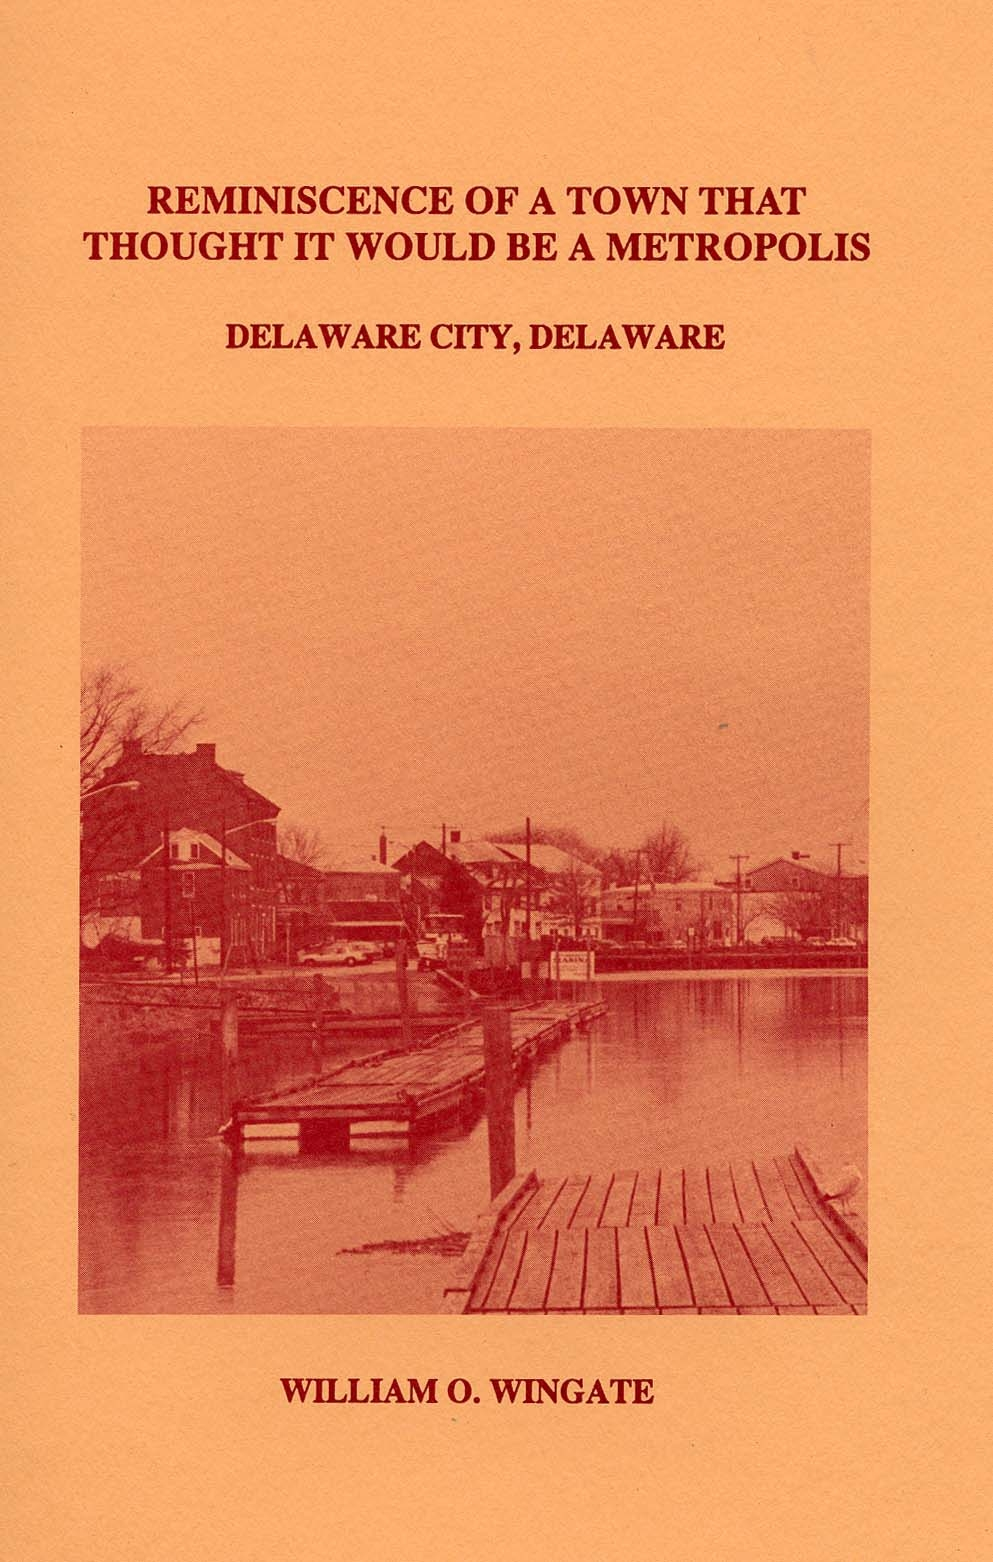 Reminiscence of a Town That Thought it Would be a Metropolis, Delaware City, Delaware, by William Wingate, 1993, 47 pp. PAPERBACK. Prices reflect the cost of the book PLUS S&H fee of $3.00.